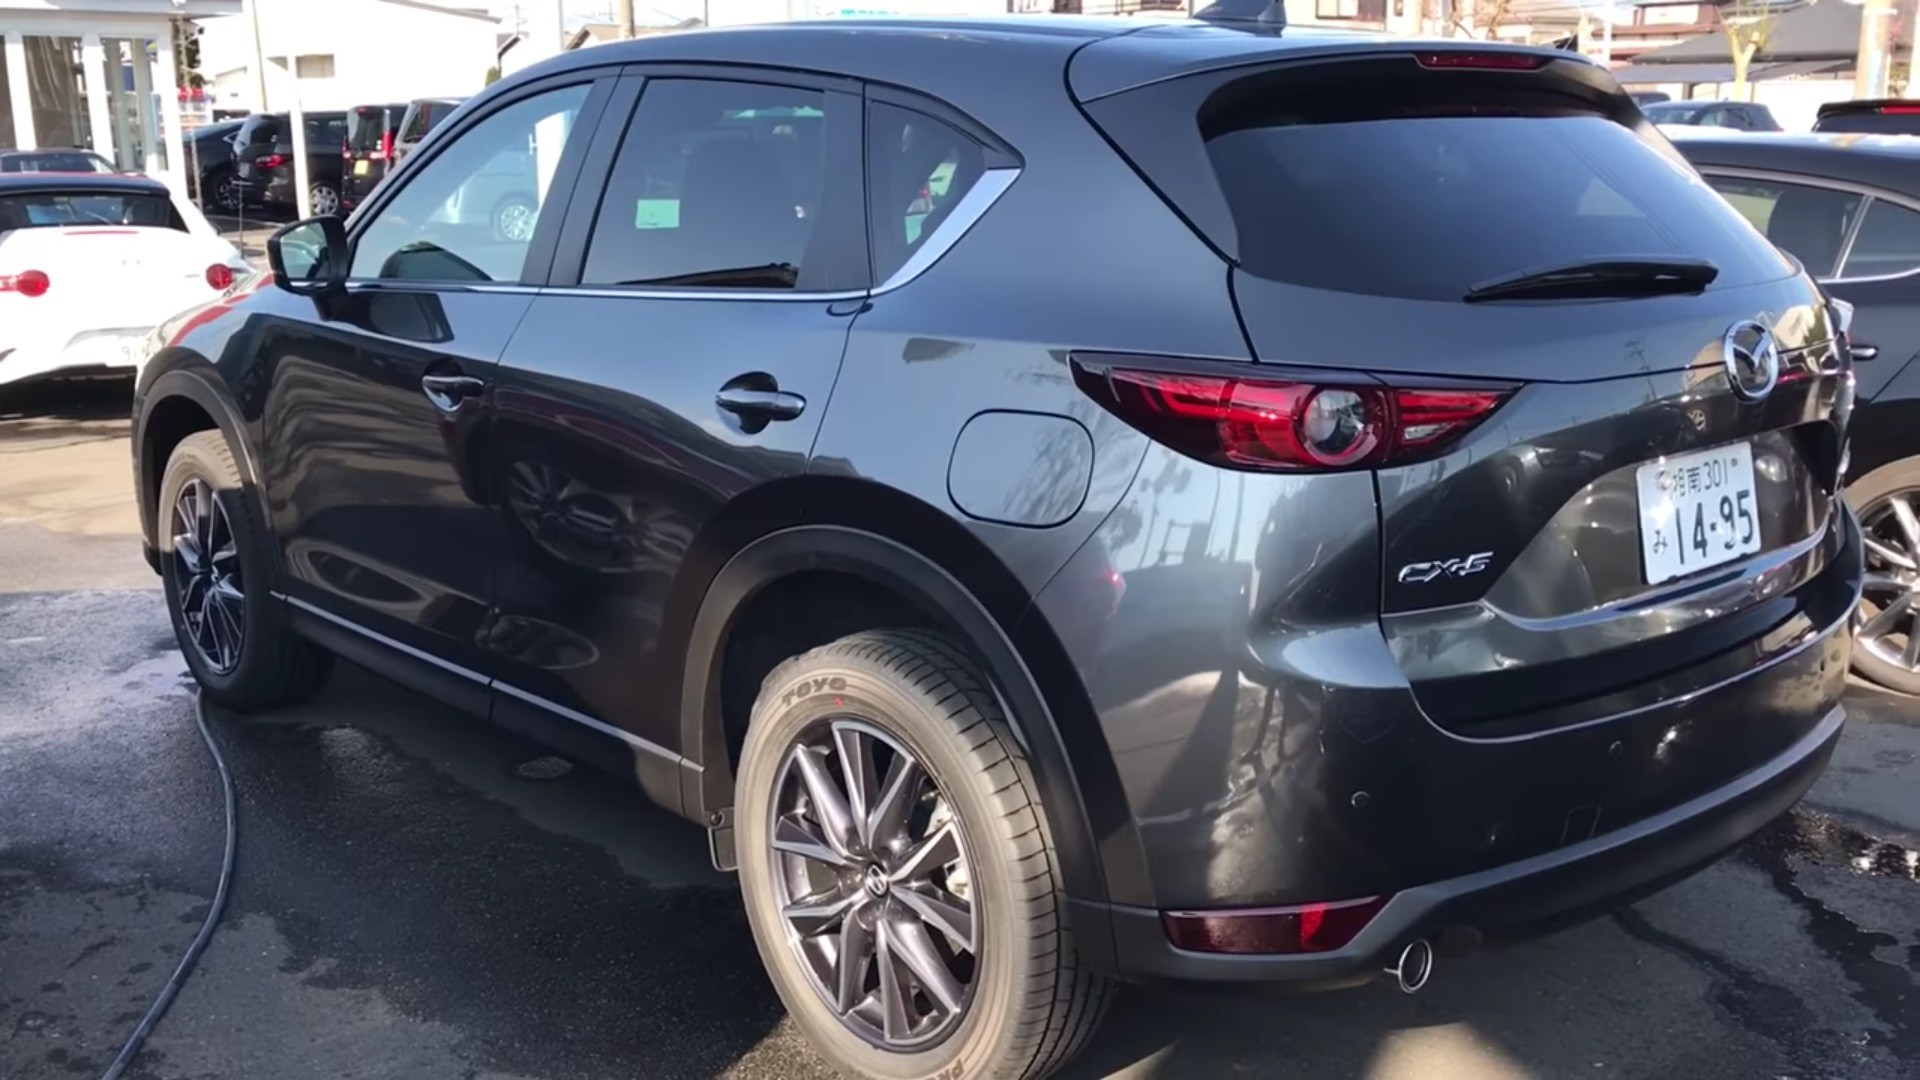 2017 mazda cx-5 pov test drive reveals how quiet the 2.2-liter